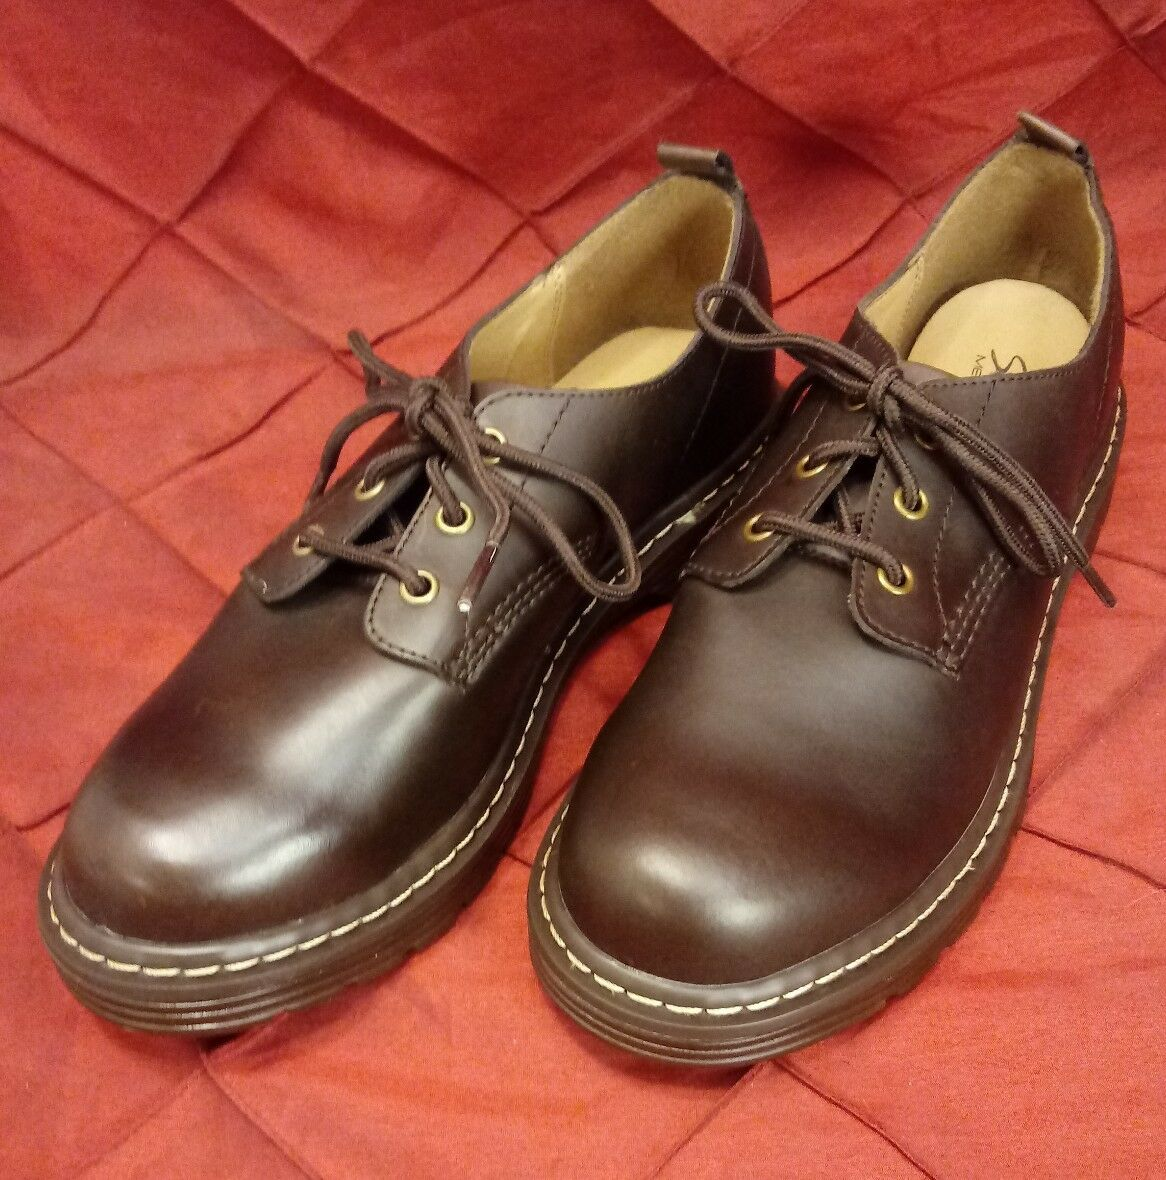 SKECHERS 48447 BURGUNDY LEATHER WOMENS LACE UP OXFORDS SHOES SZ 10